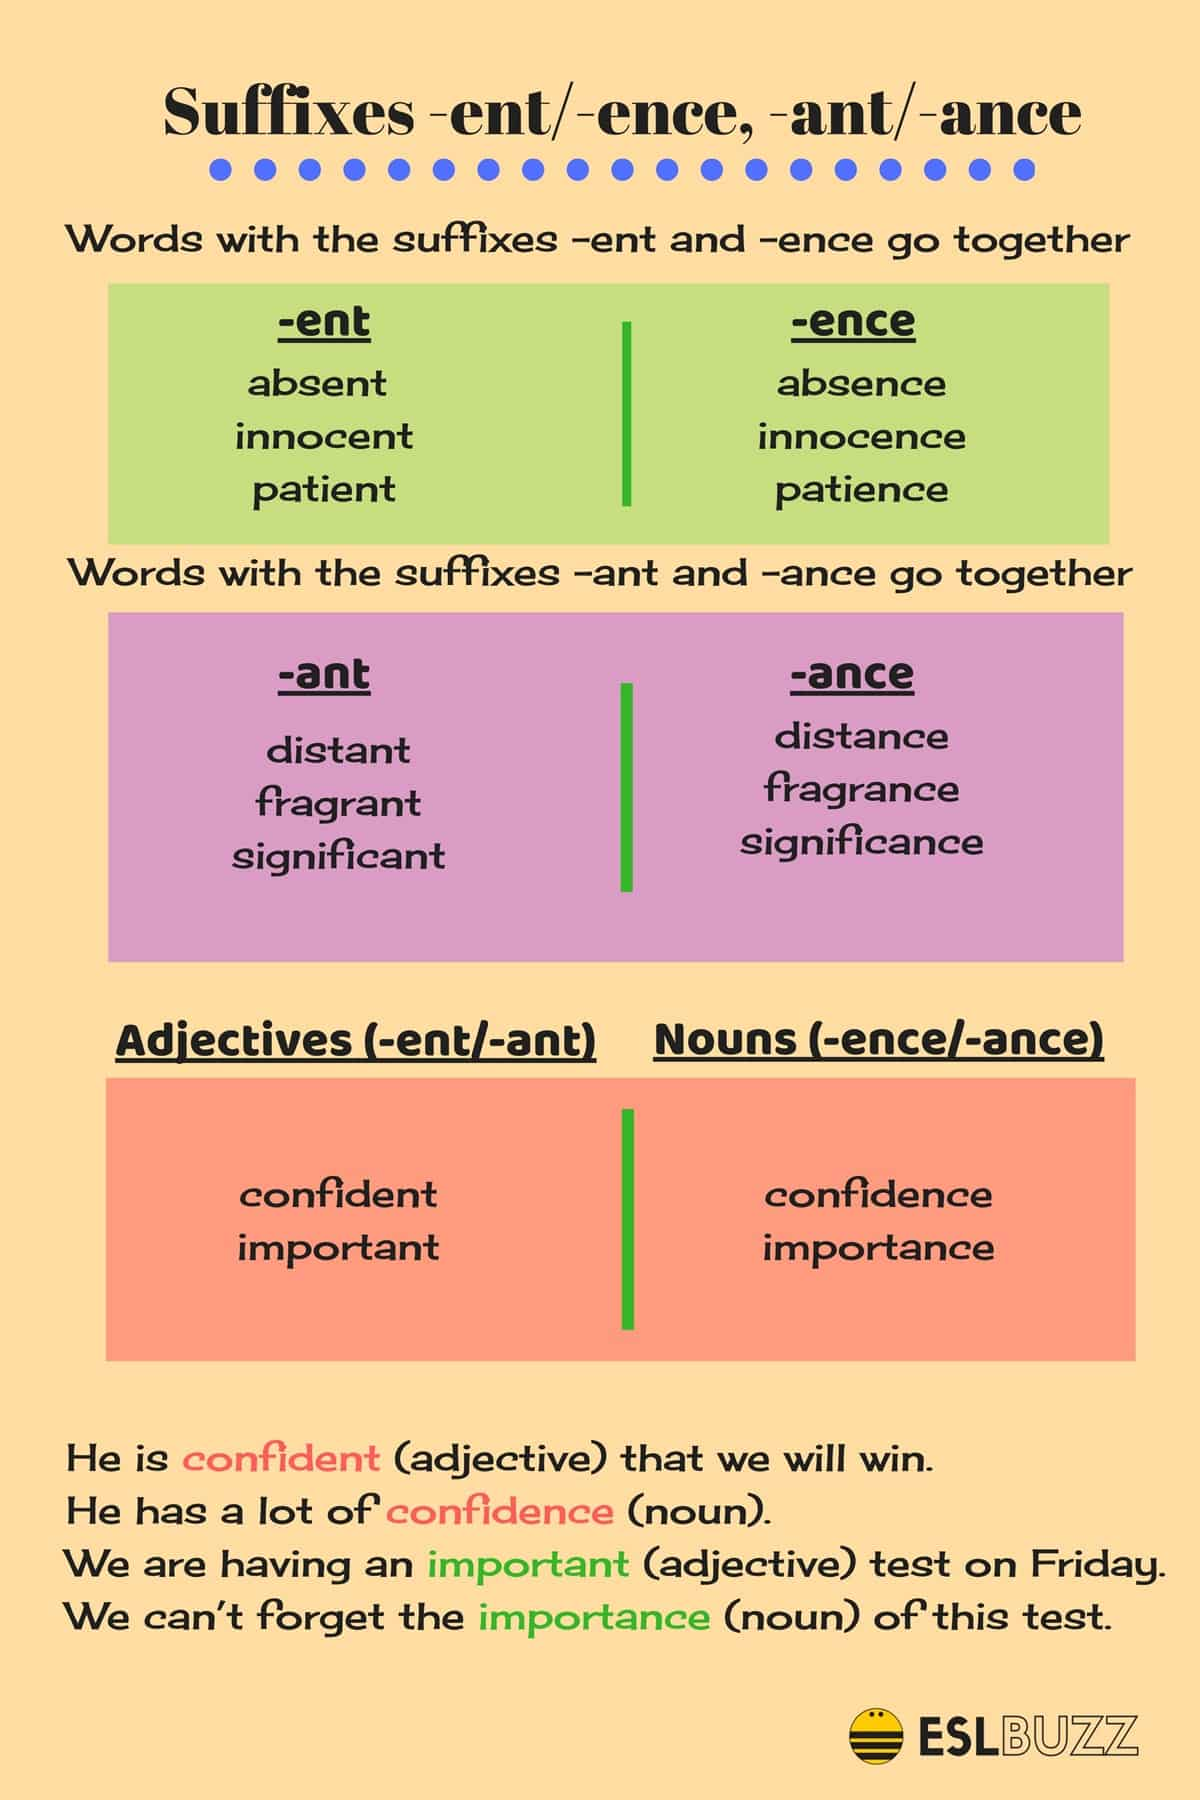 "Words Ending with Suffixes ""-ent/-ence"" and ""-ant/-ance"""